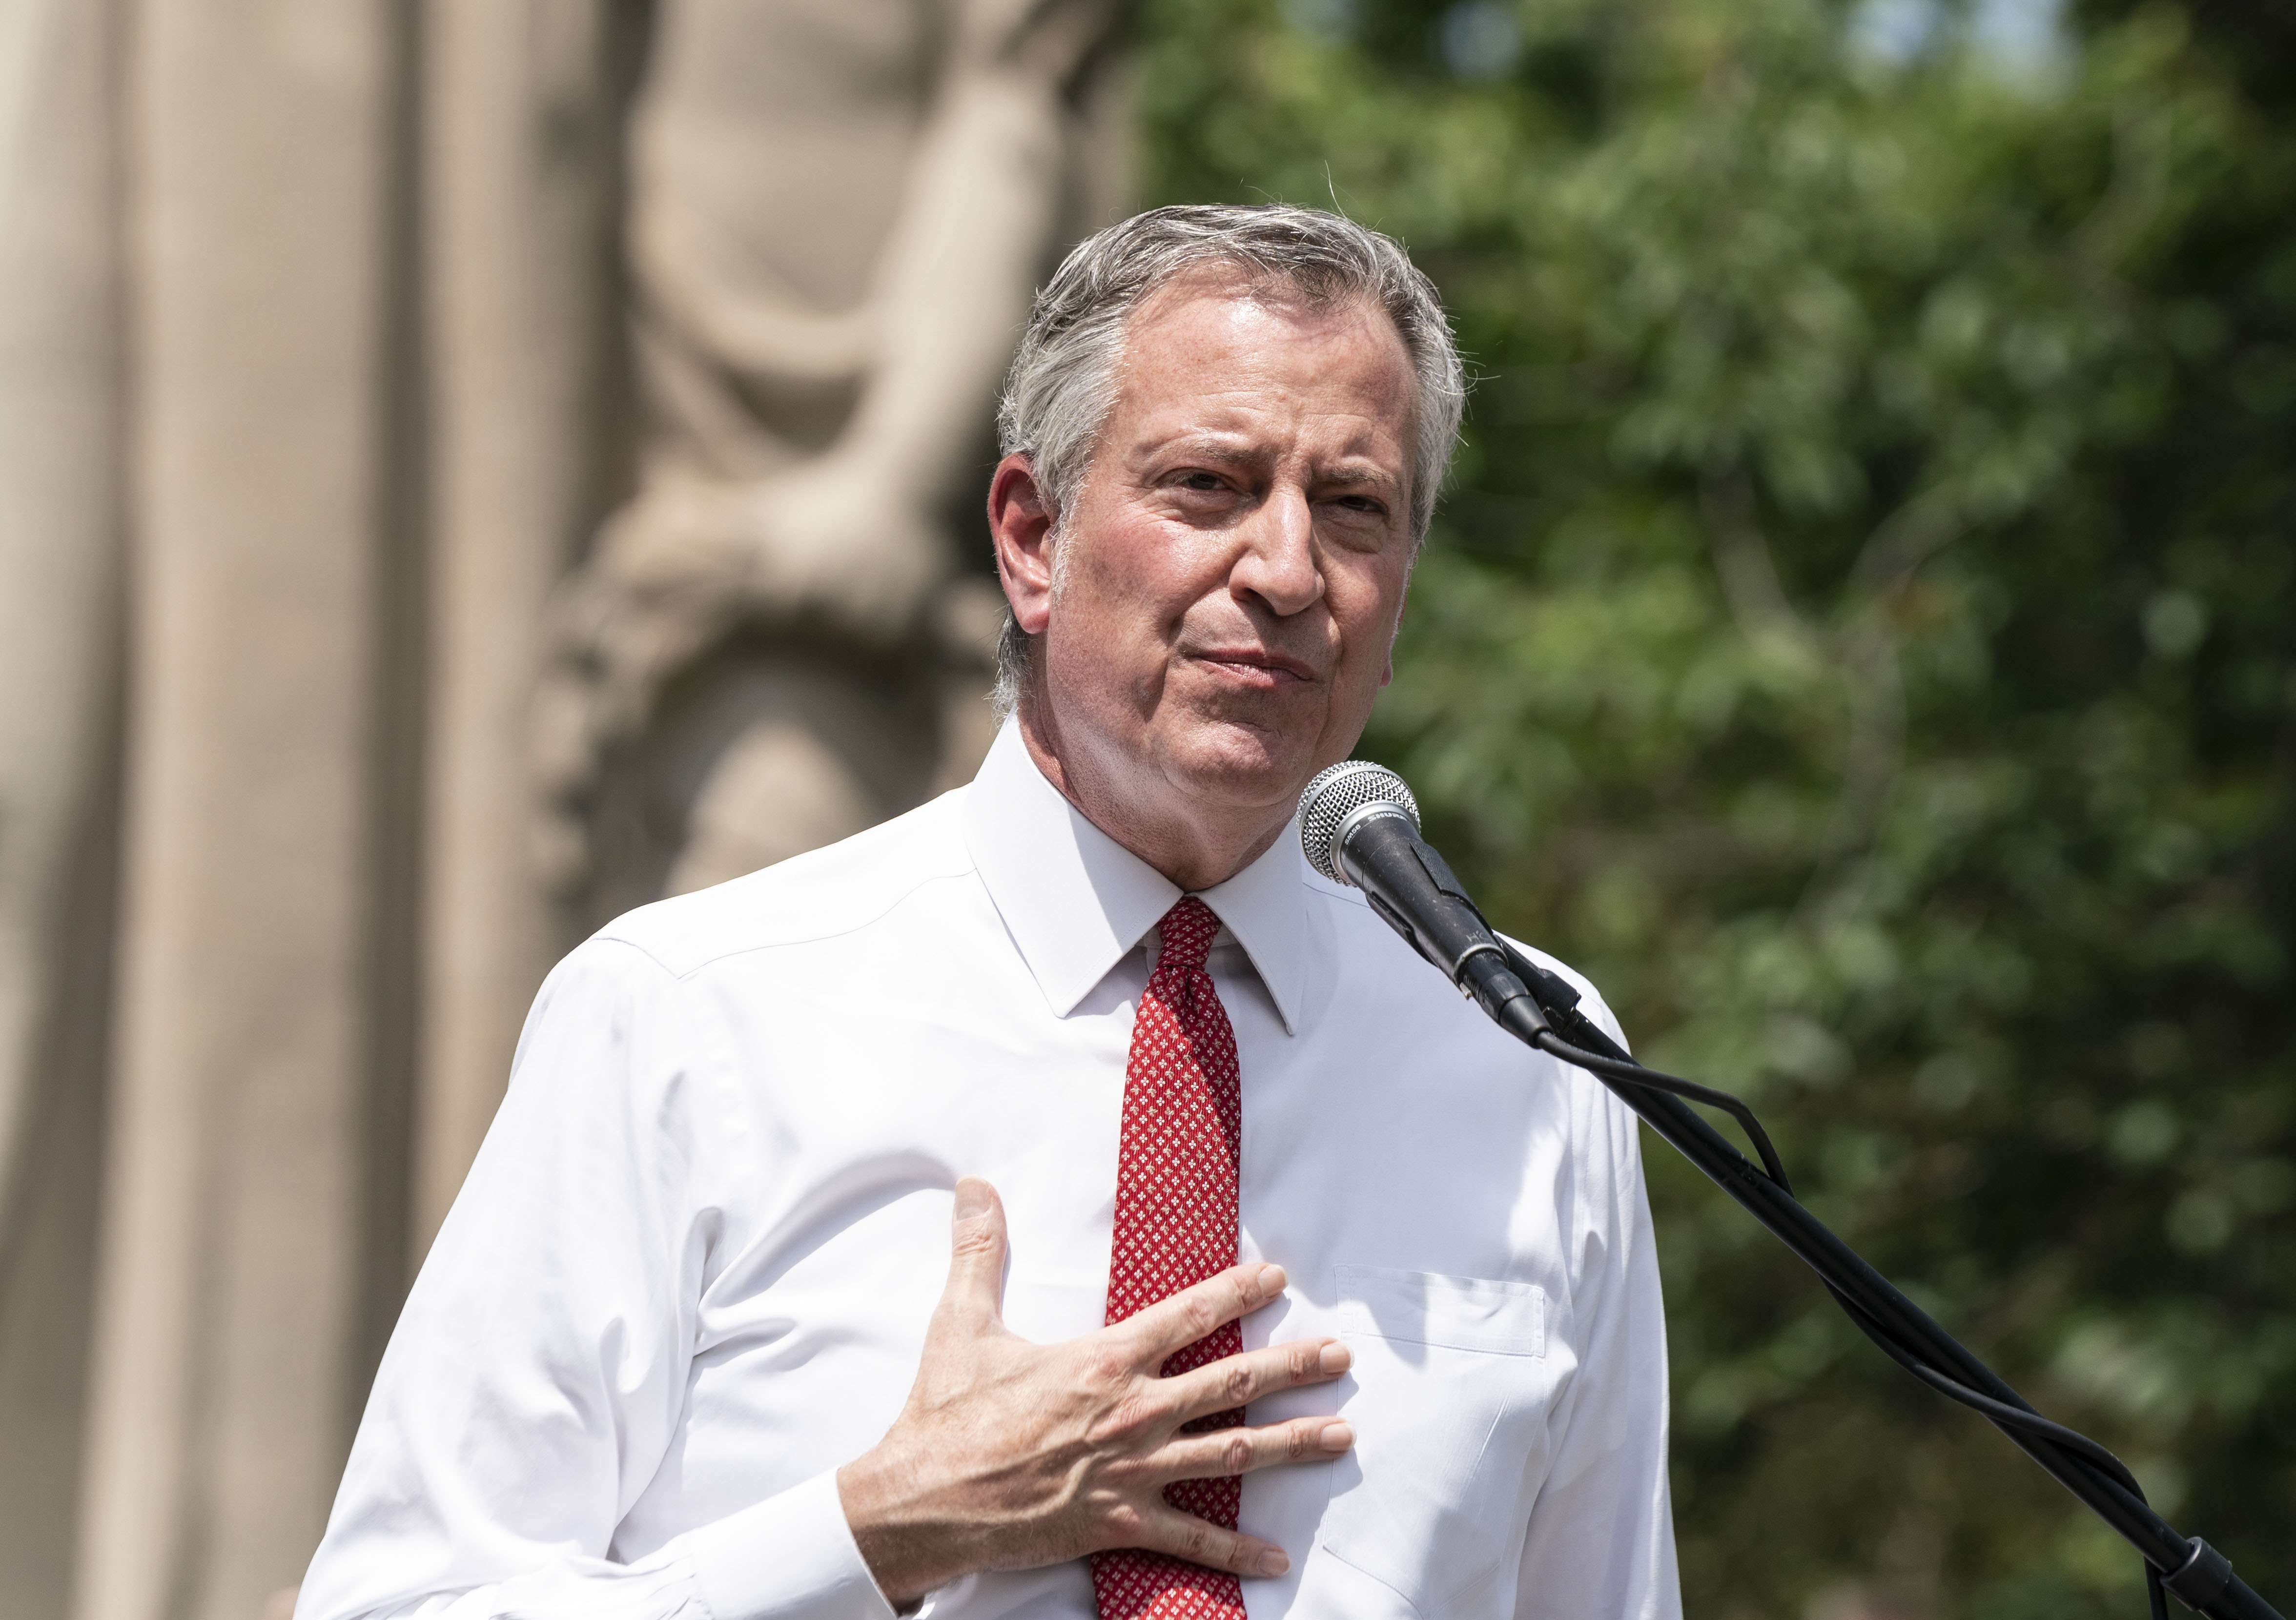 New York City Mayor Bill de Blasio speaks at Cadman Plaza in Brooklyn, New York, during a memorial service for George Floyd on June 4.